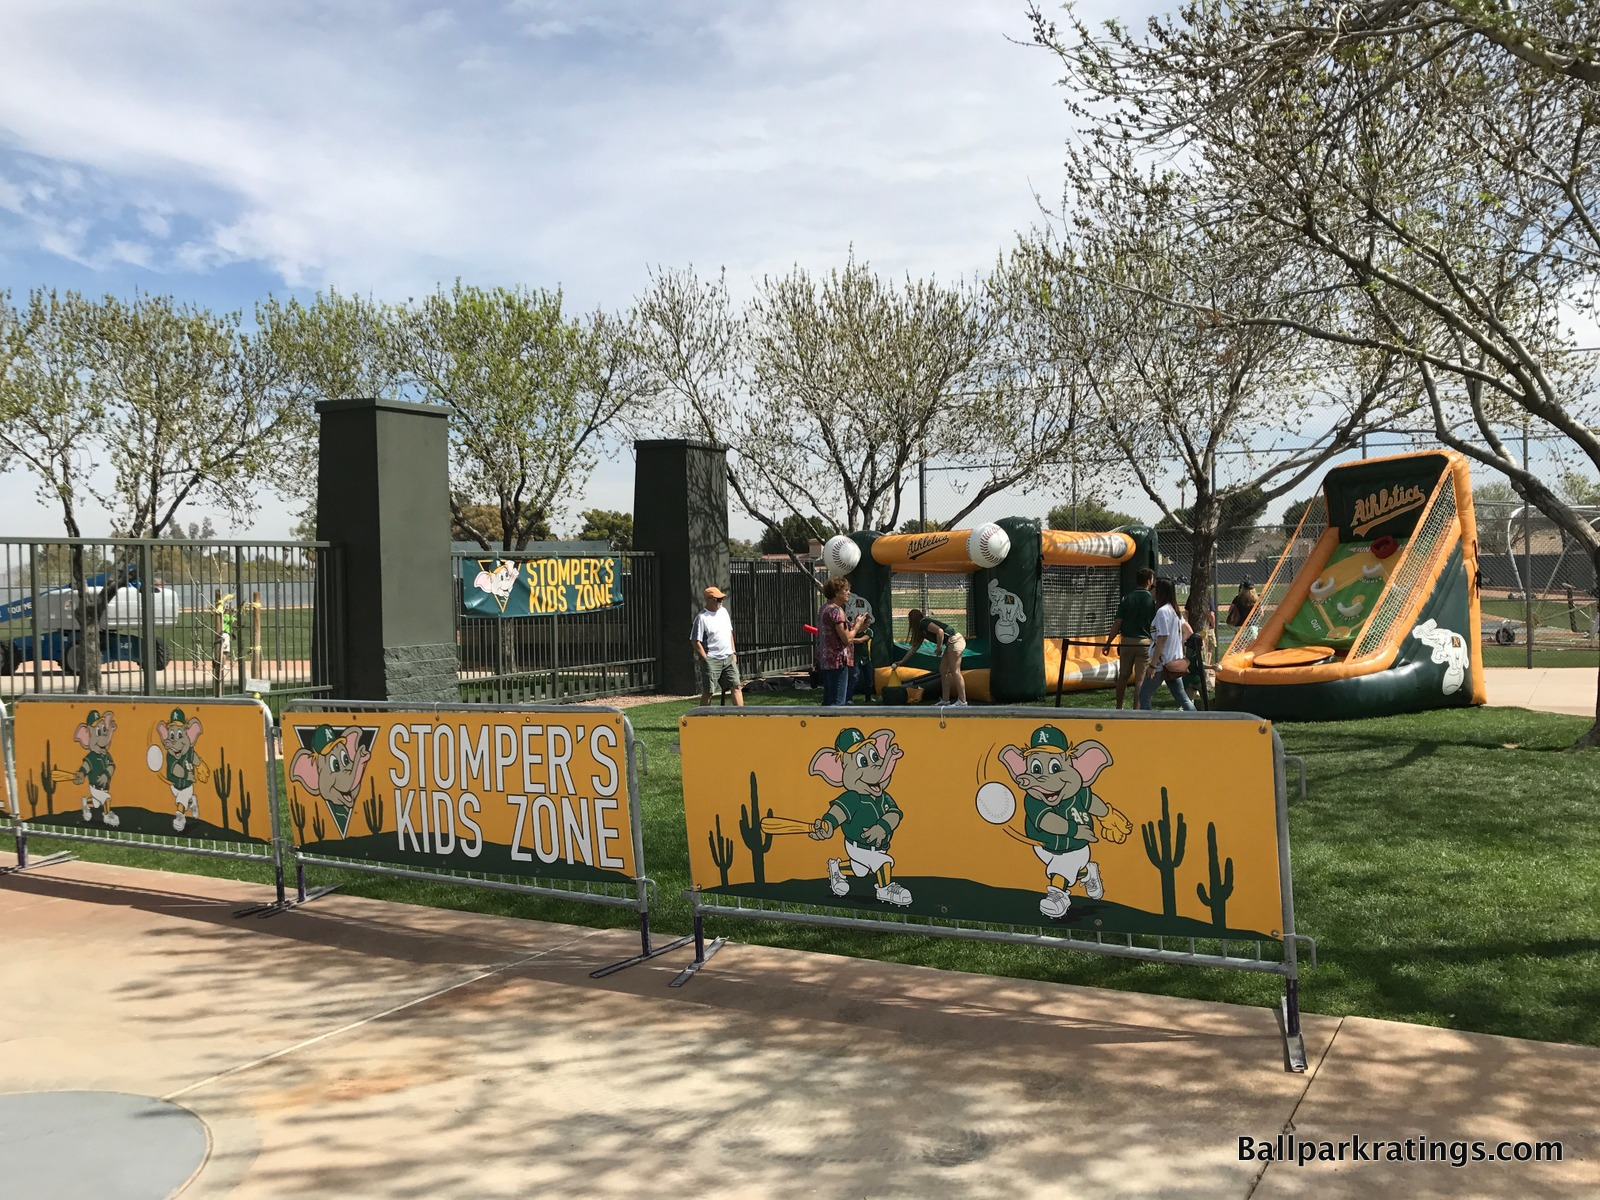 Stomper's Kids Zone at HohoKam Stadium.